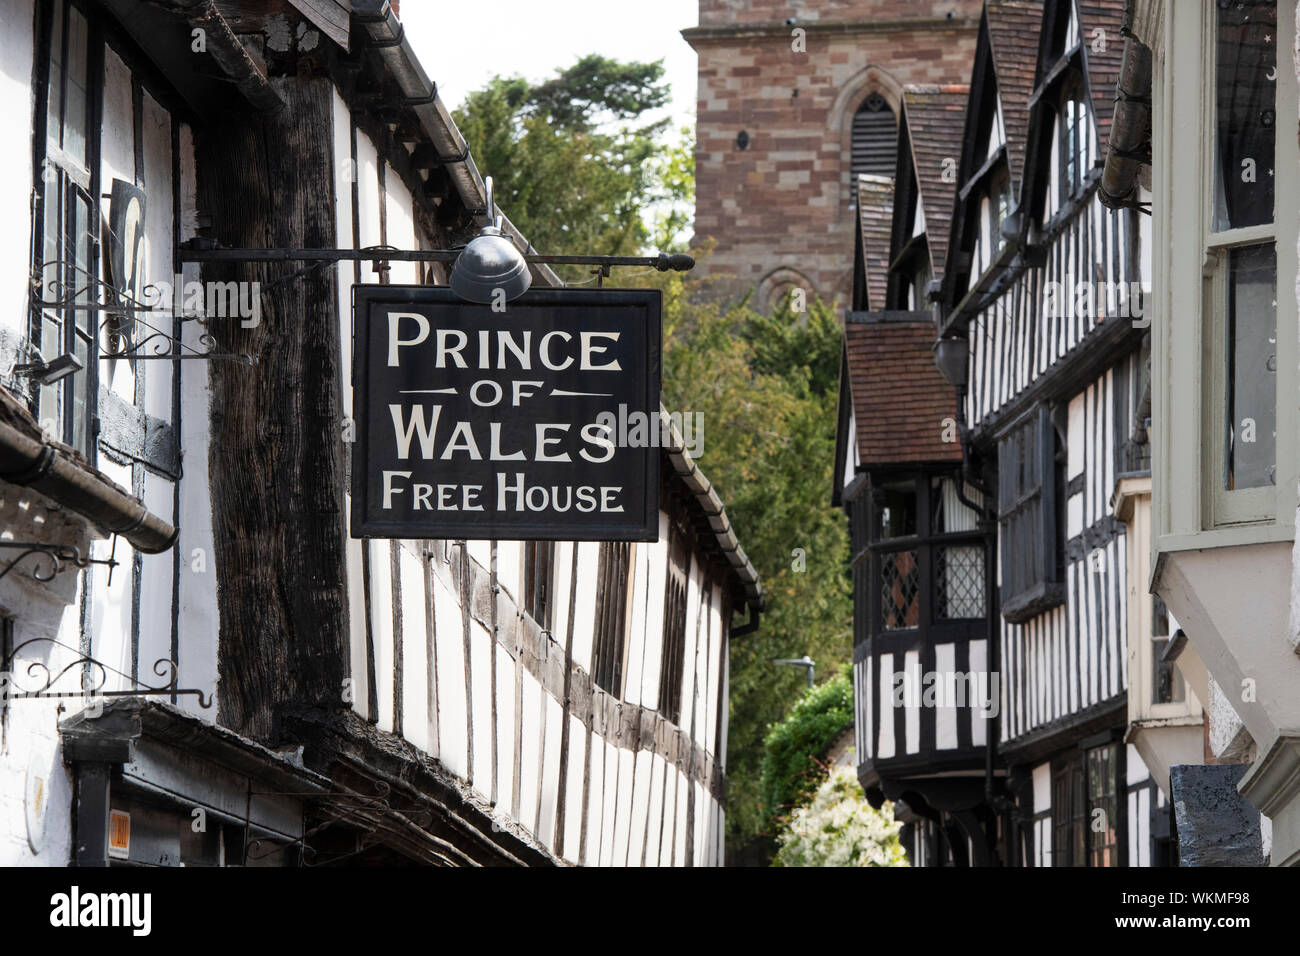 Prince of wales free house sign. 16th century timber framed period building. Church lane, Ledbury Herefordshire. England Stock Photo